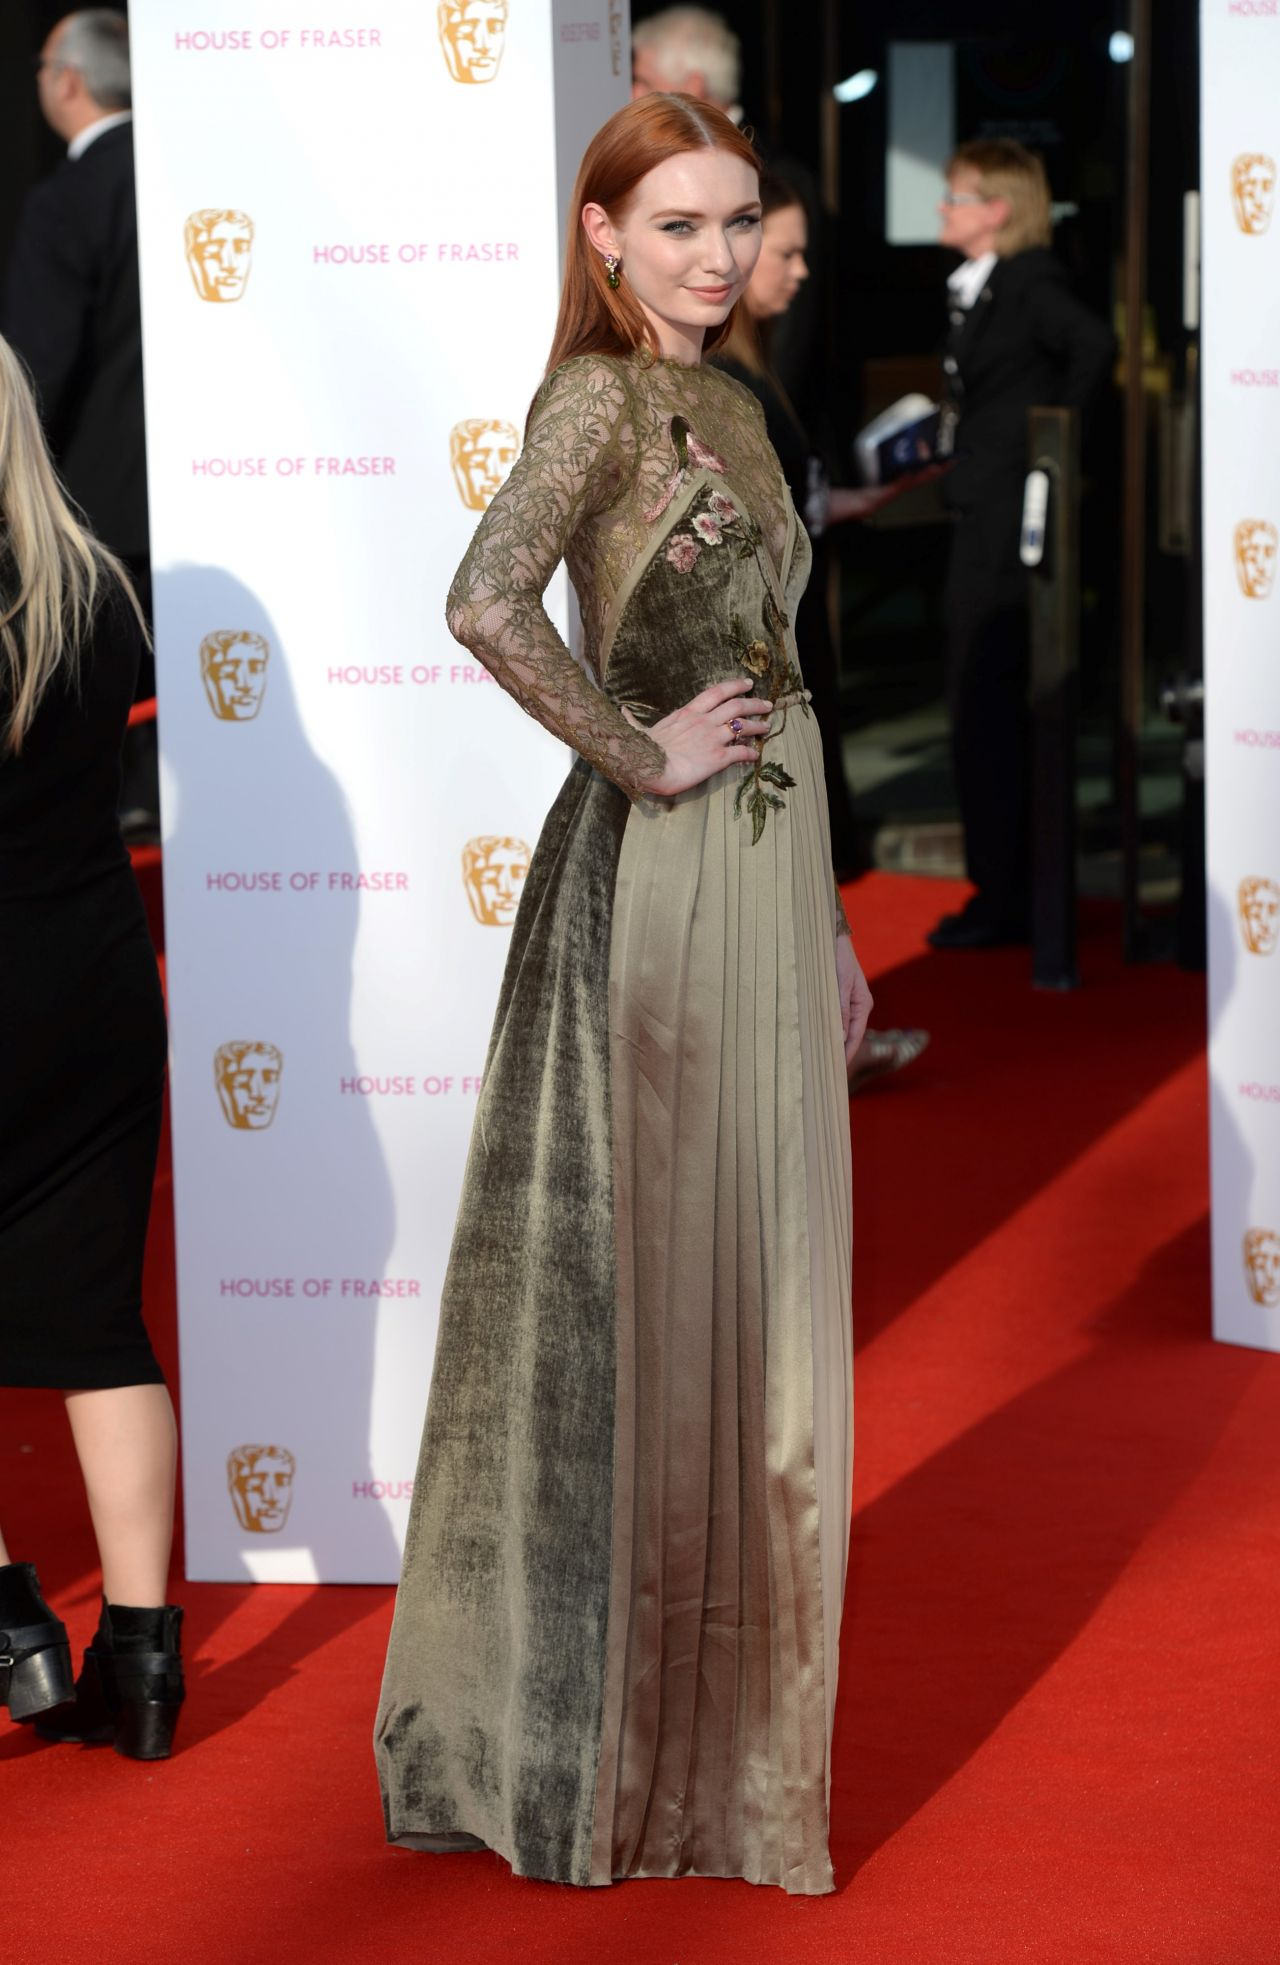 Eleanor tomlinson at 2019 british academy television awards in london